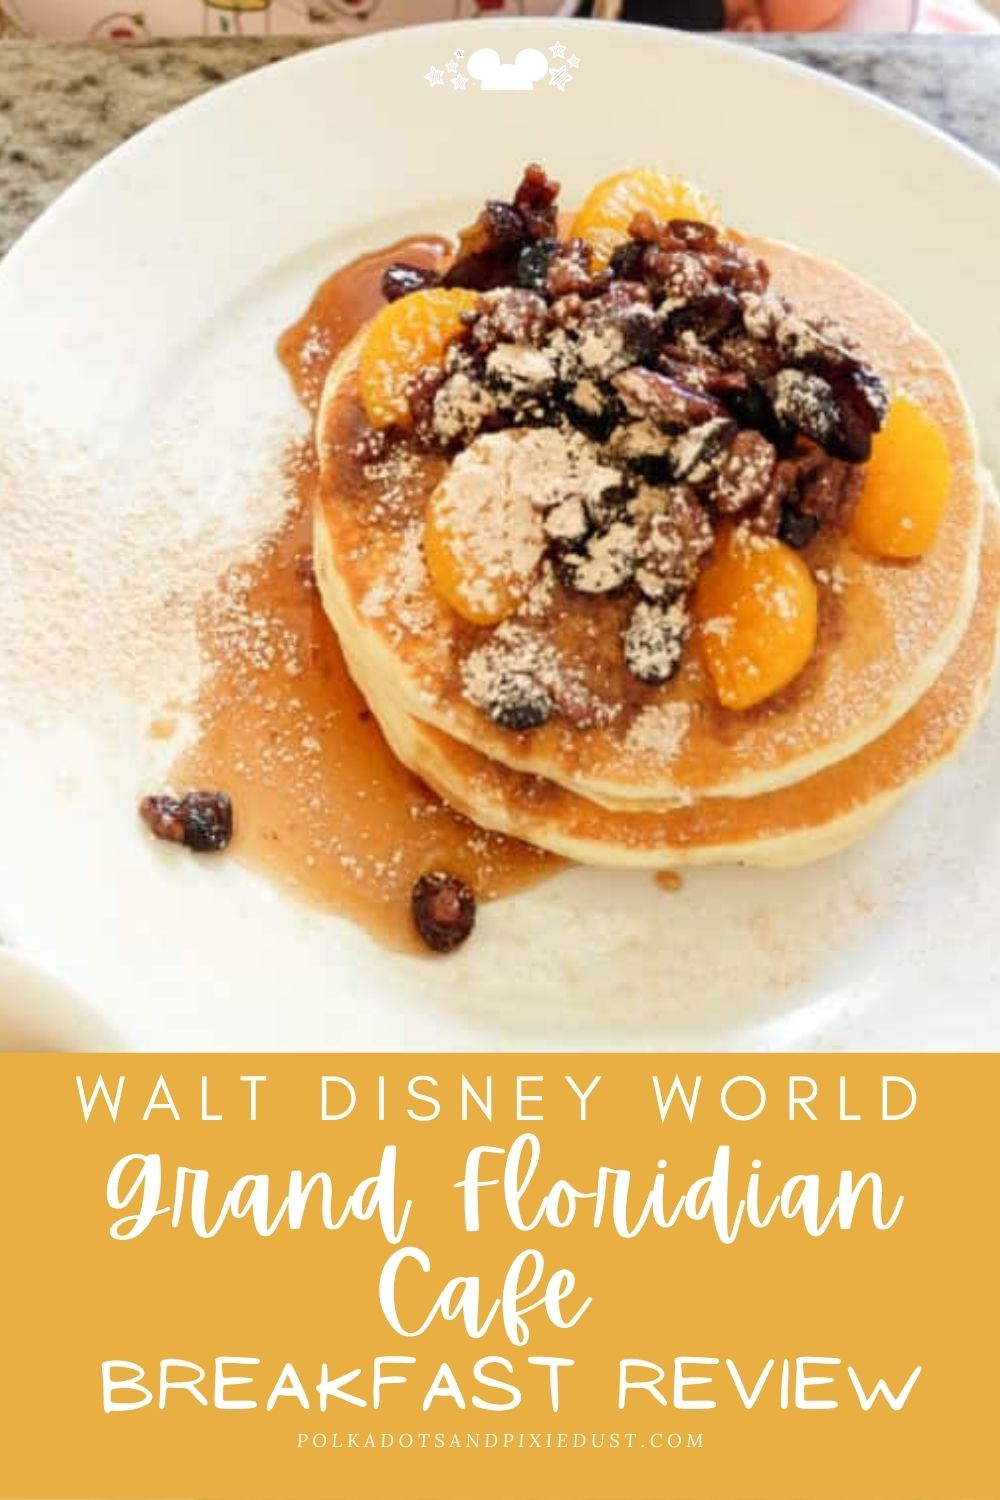 Disney's Grand Floridian Cafe offers an extensive breakfast and brunch menu! Check out everything we got and what we'd recommend! #polkadotpixies #grandfloridian #disneybreakfast